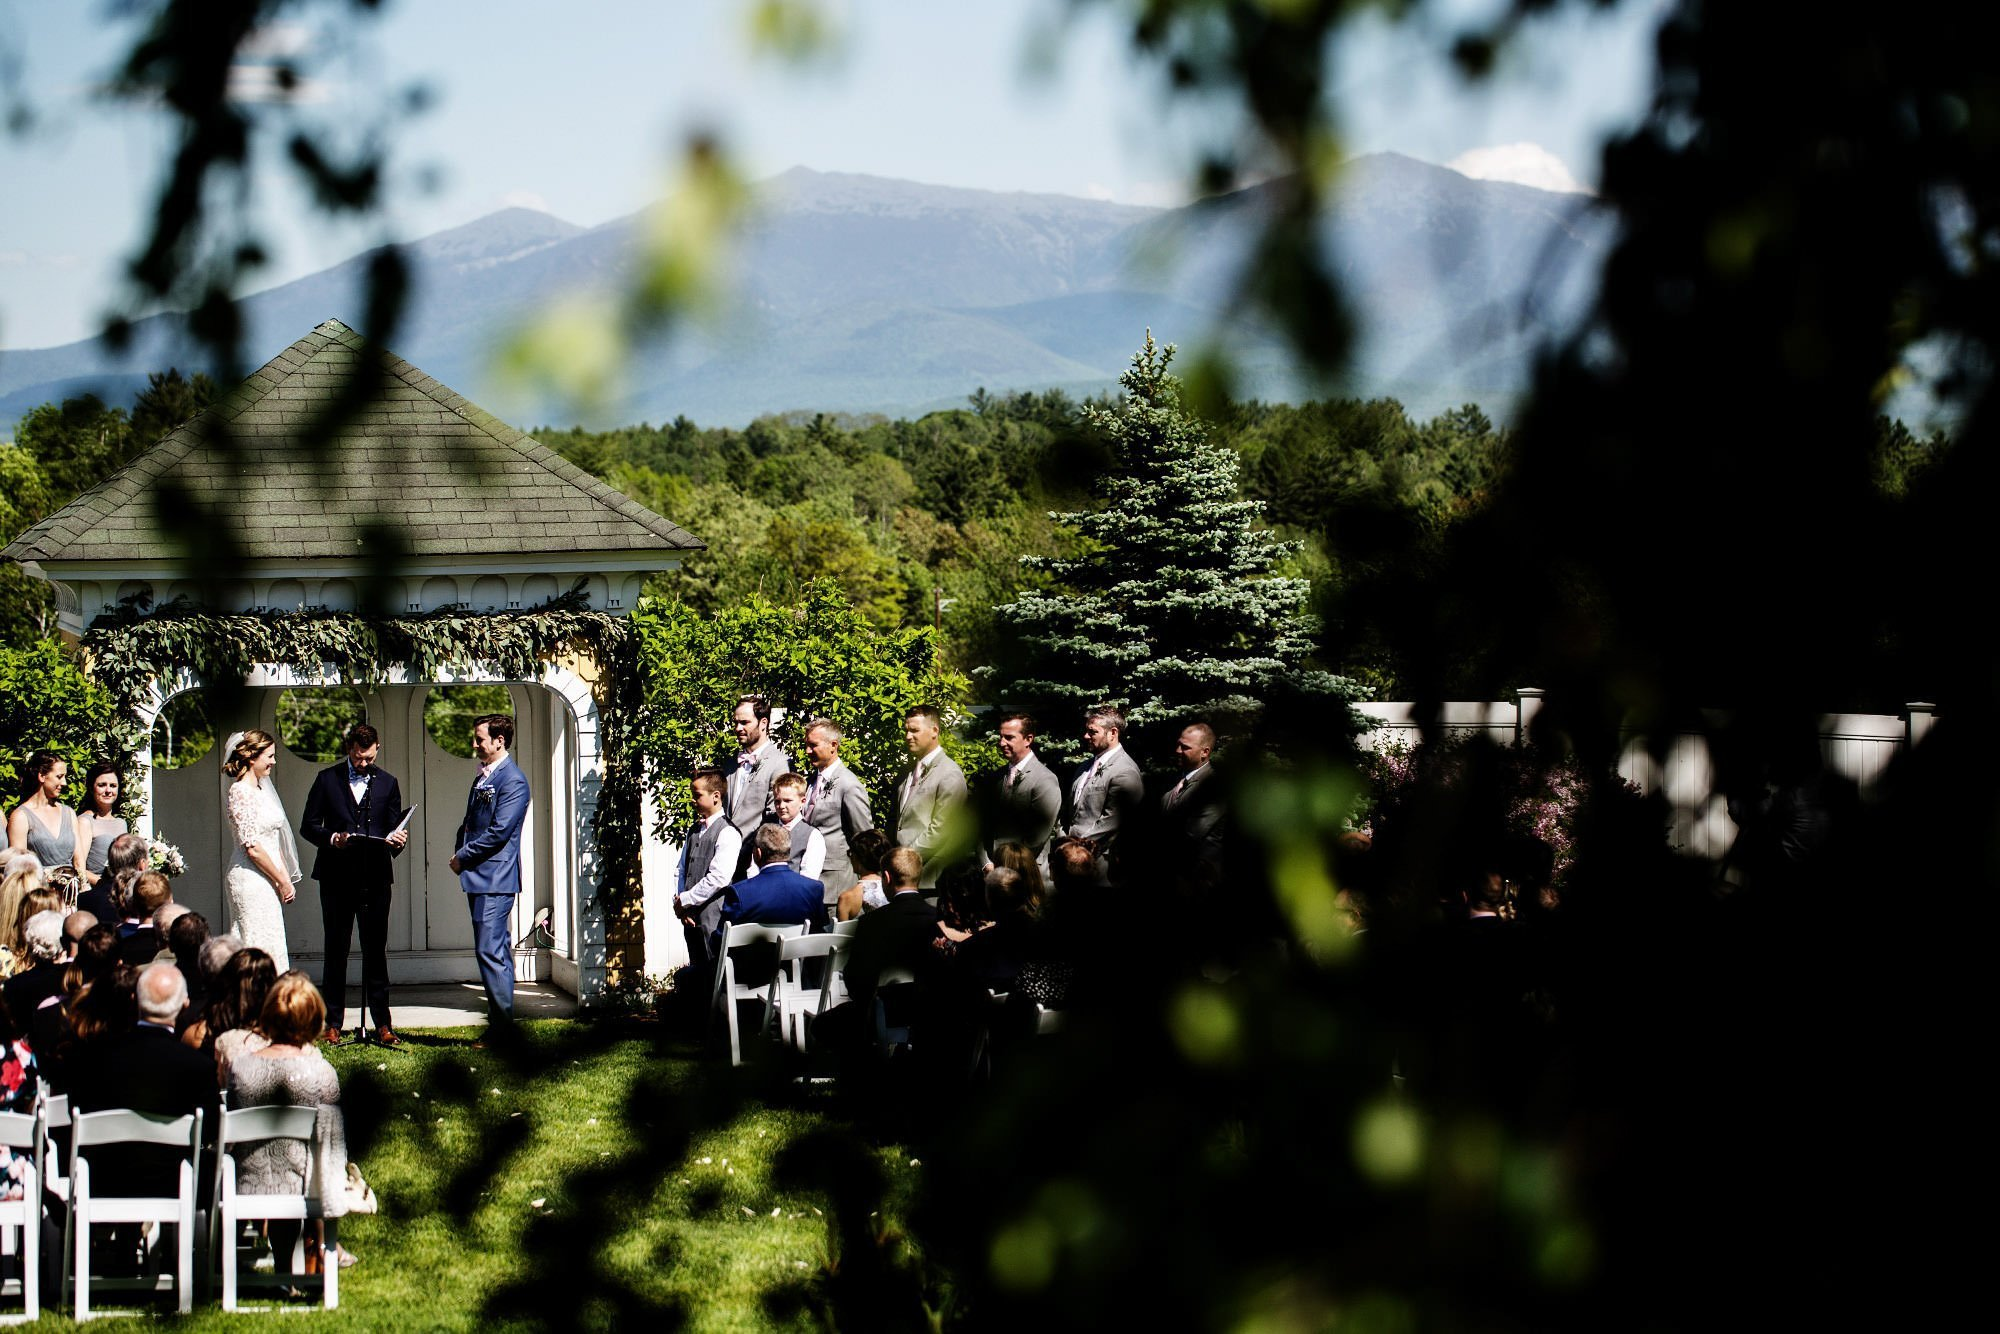 Mountain View Grand Wedding  I  The wedding ceremony by the White Mountains.